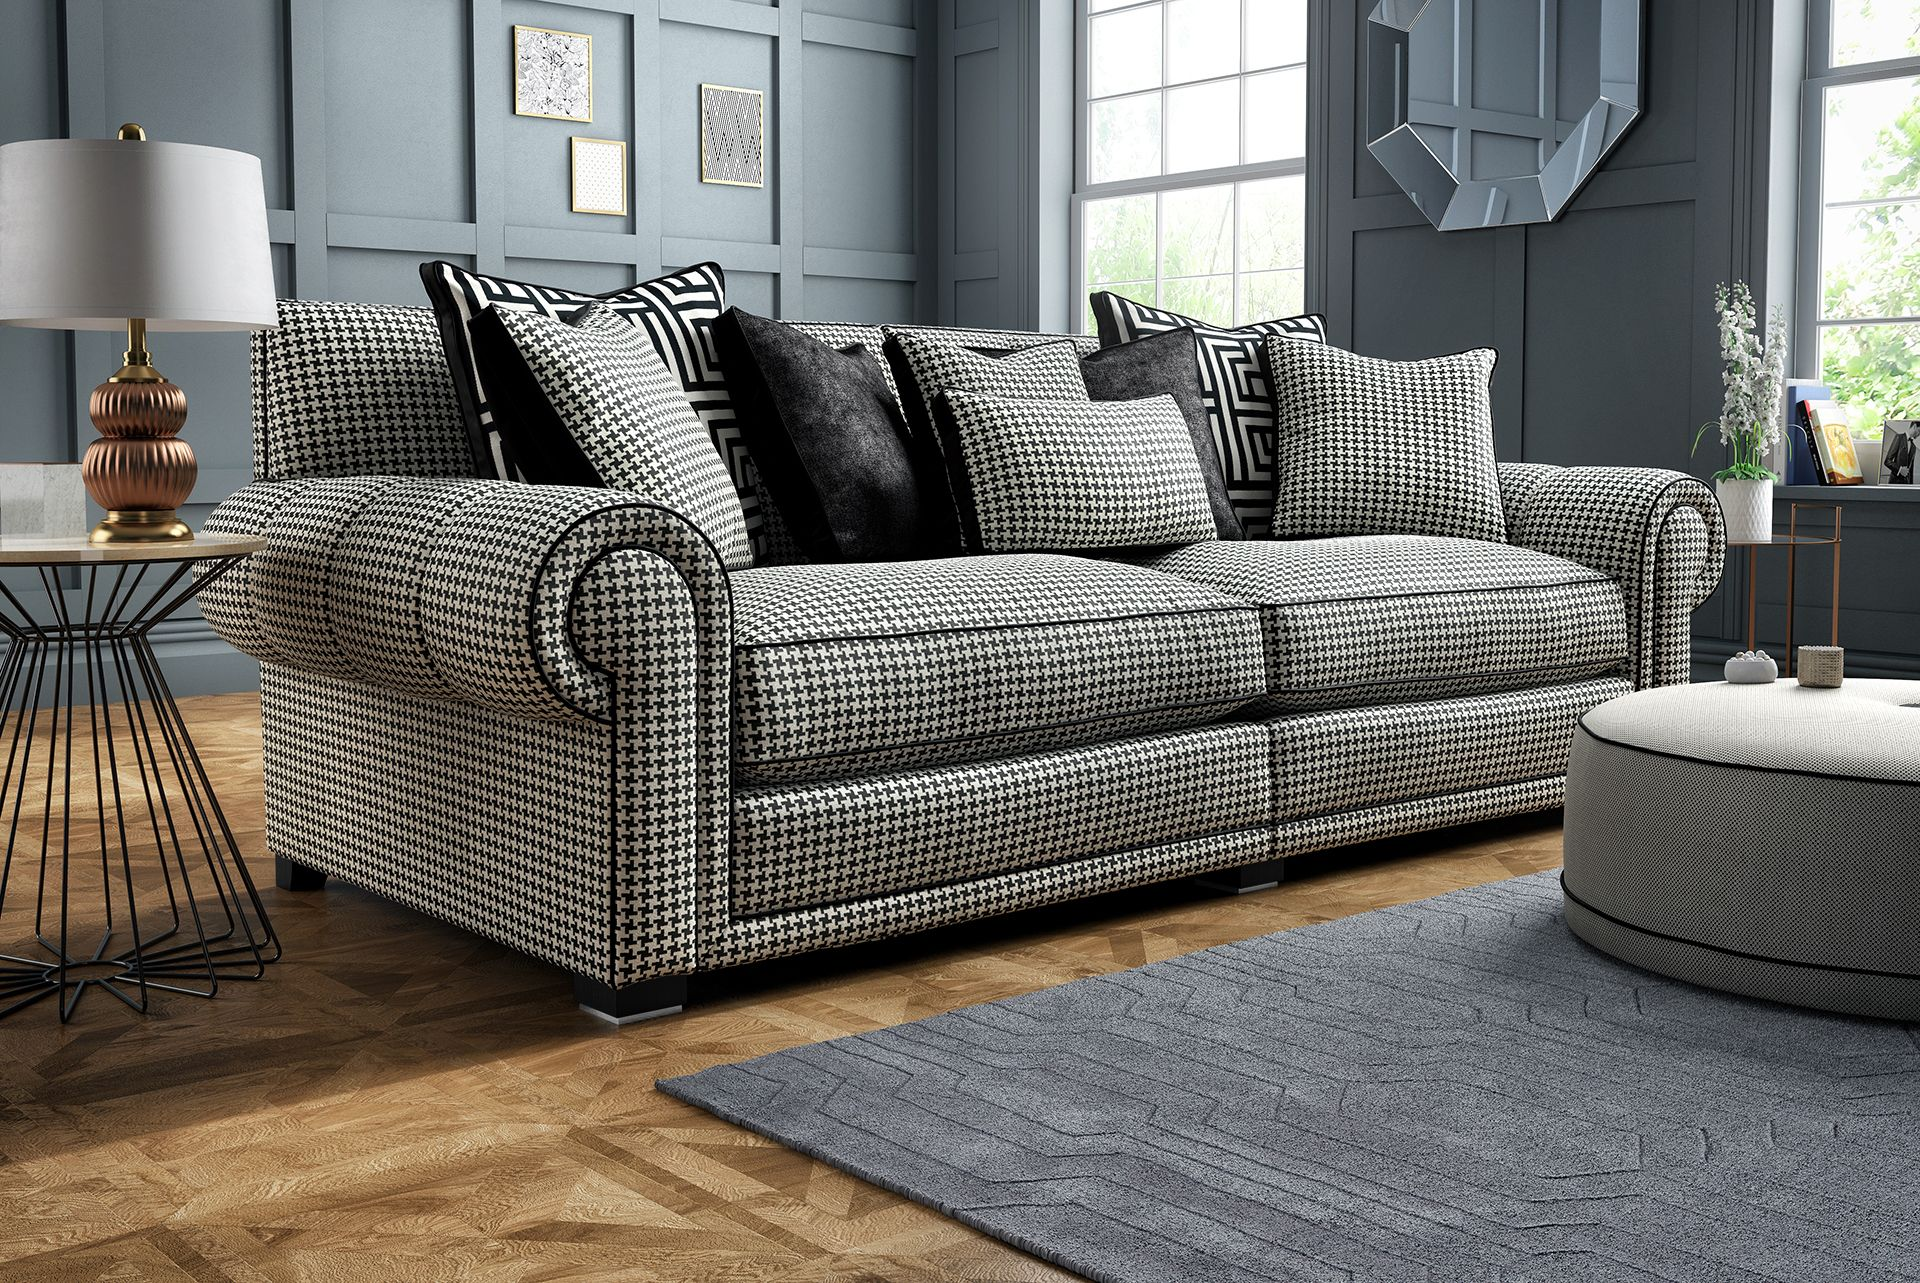 You Can Keep Your Room More Muted If A Bright Colour Scheme Isn T To Your Tastes Just Ensure That The Furniture Is Minimalist Kee Stylish Sofa Furniture Sofa